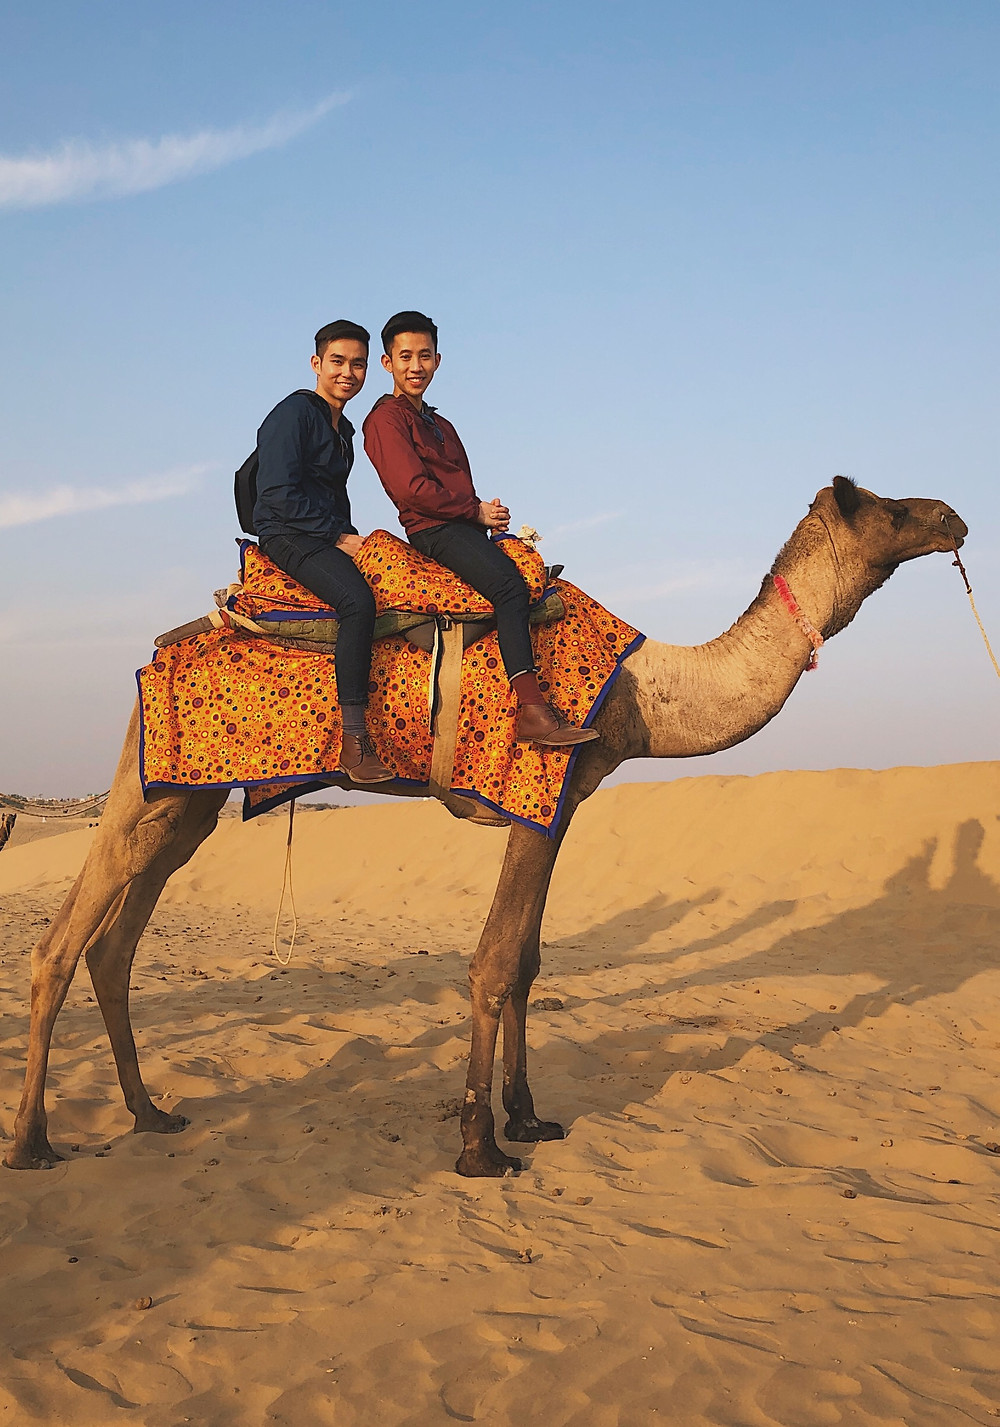 Camel ride at Sam Sand Dunes, near Jaisalmer, Rajasthan, India